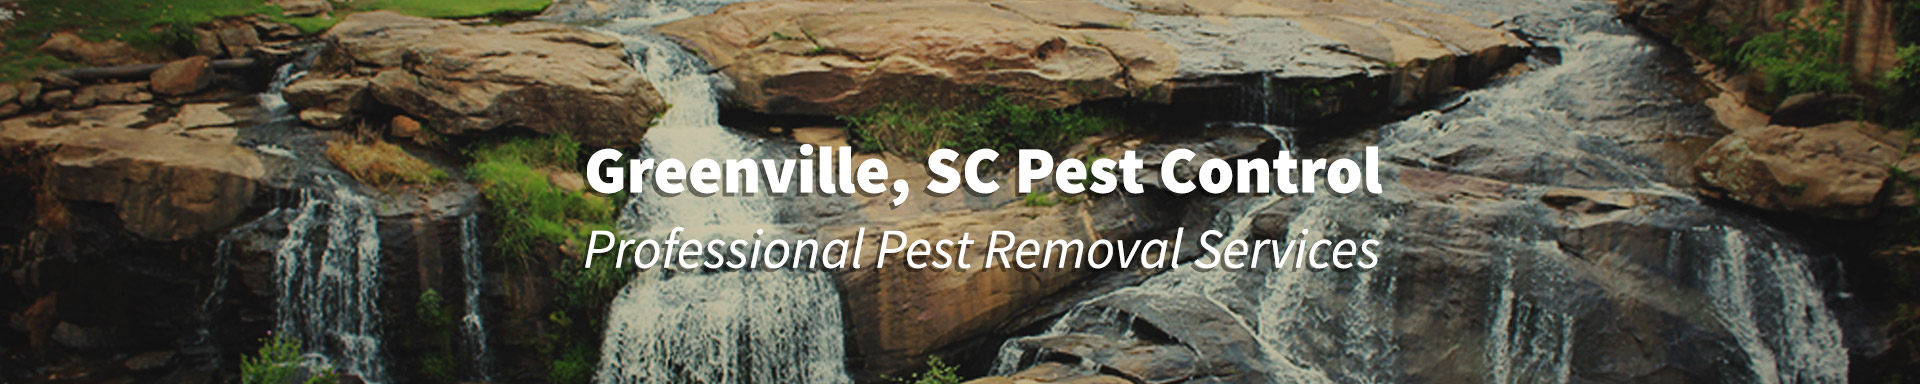 Pest Control Greenville, South Carolina